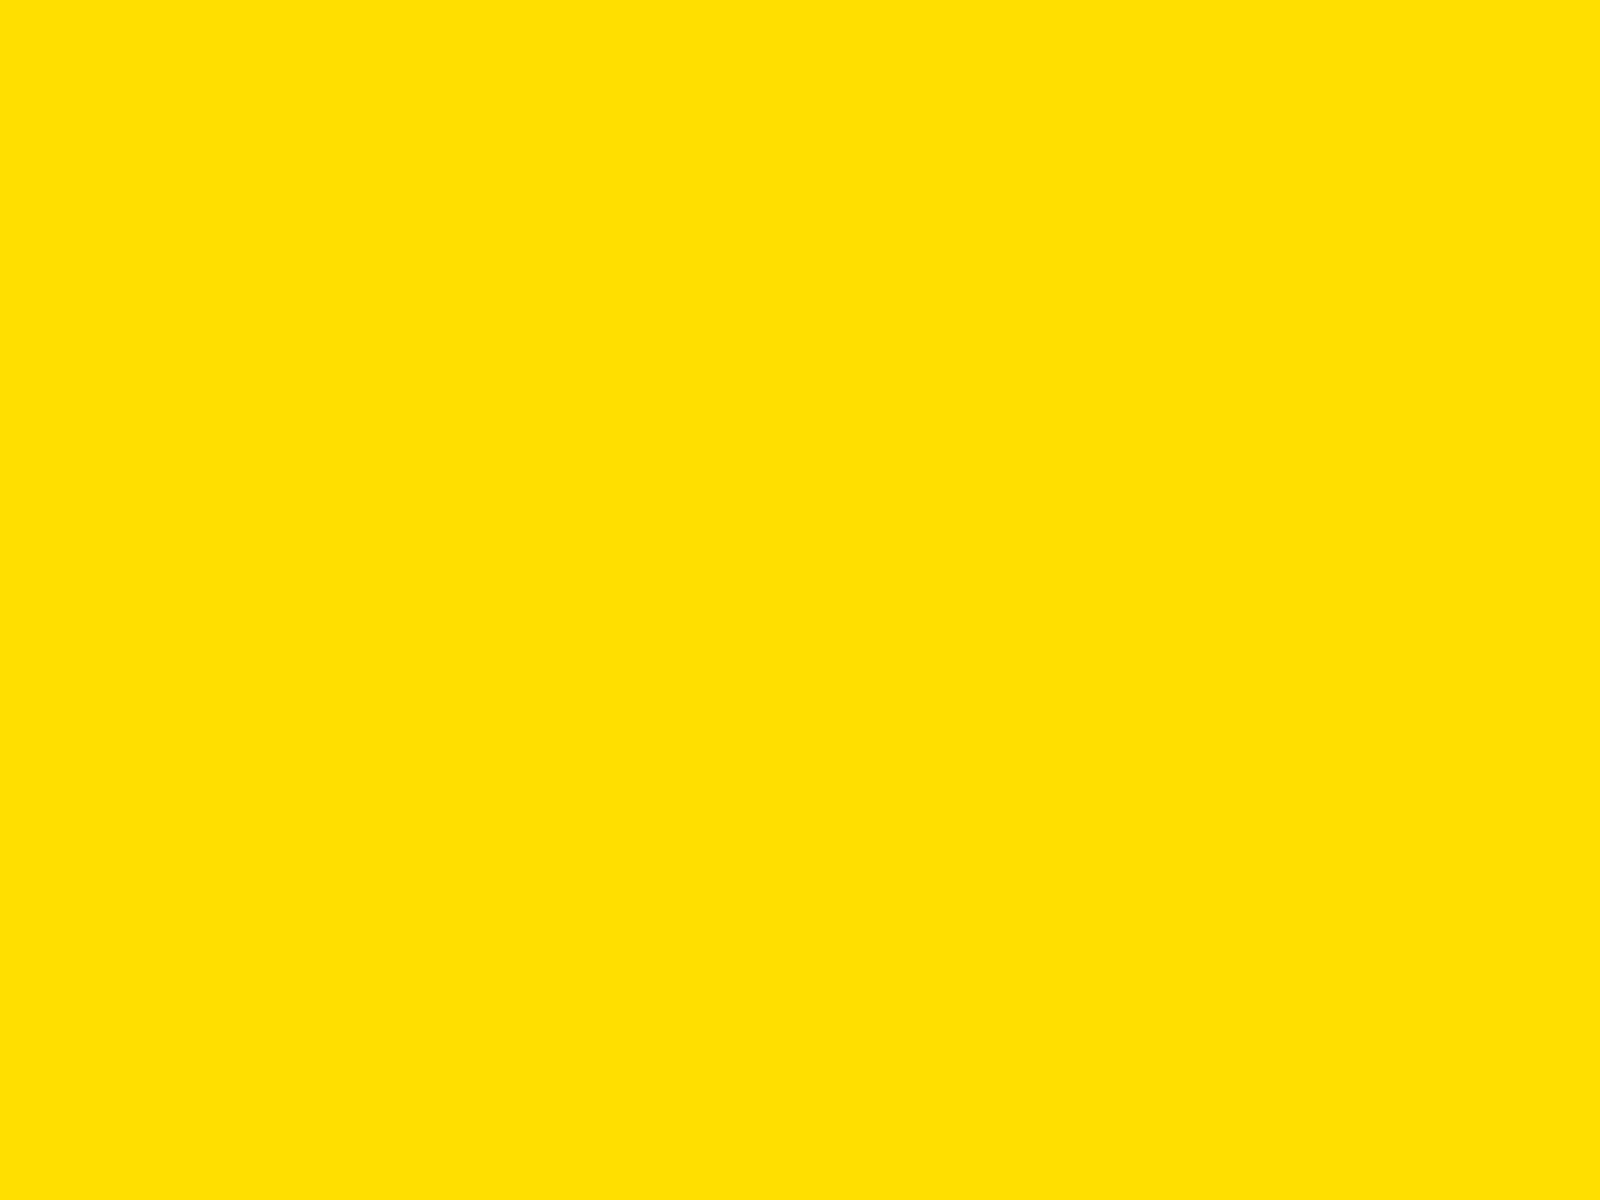 1600x1200 Yellow Pantone Solid Color Background